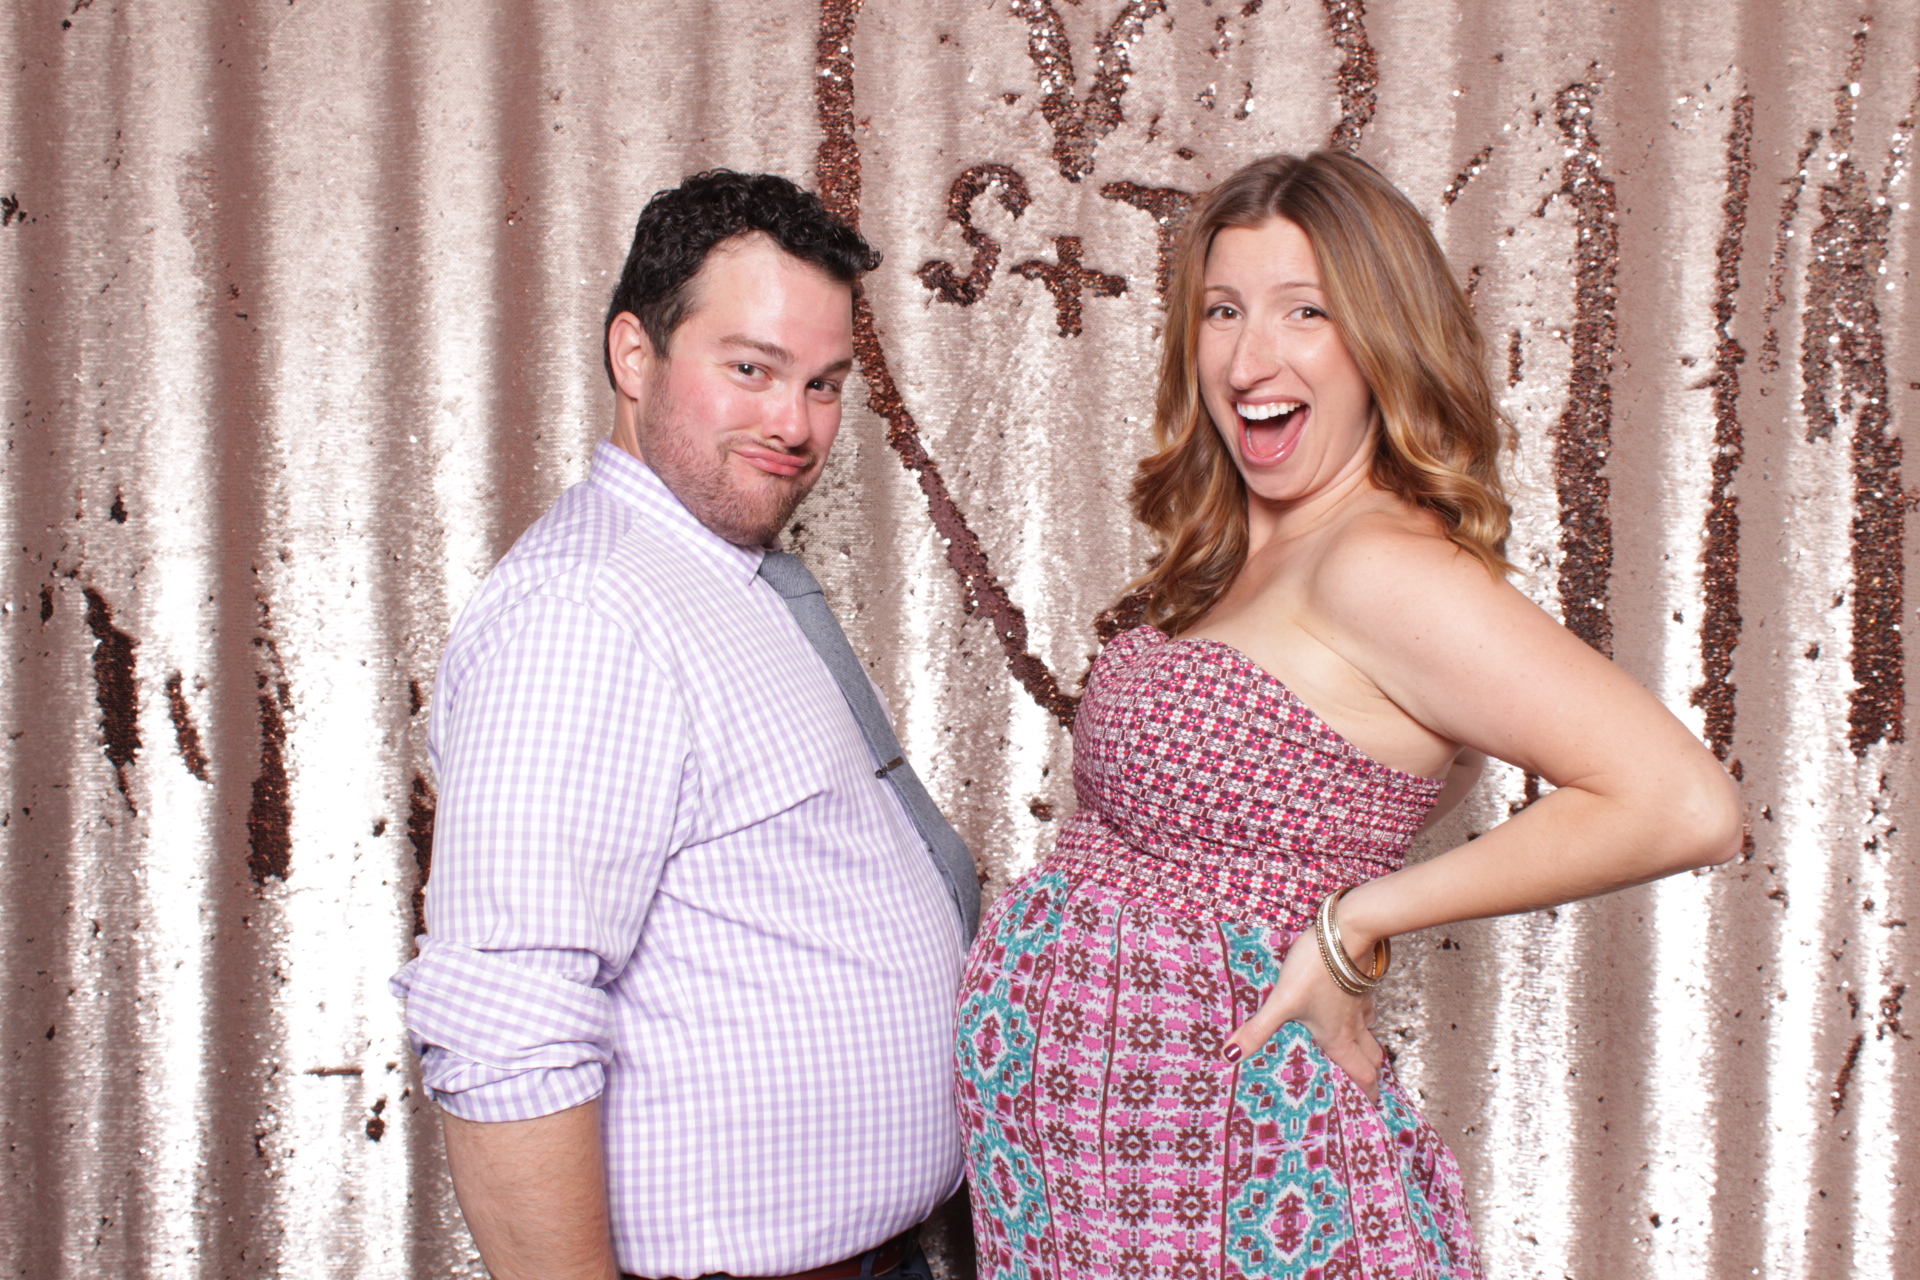 Minneapolis_Aria_Wedding_Photo_Booth (11).jpg